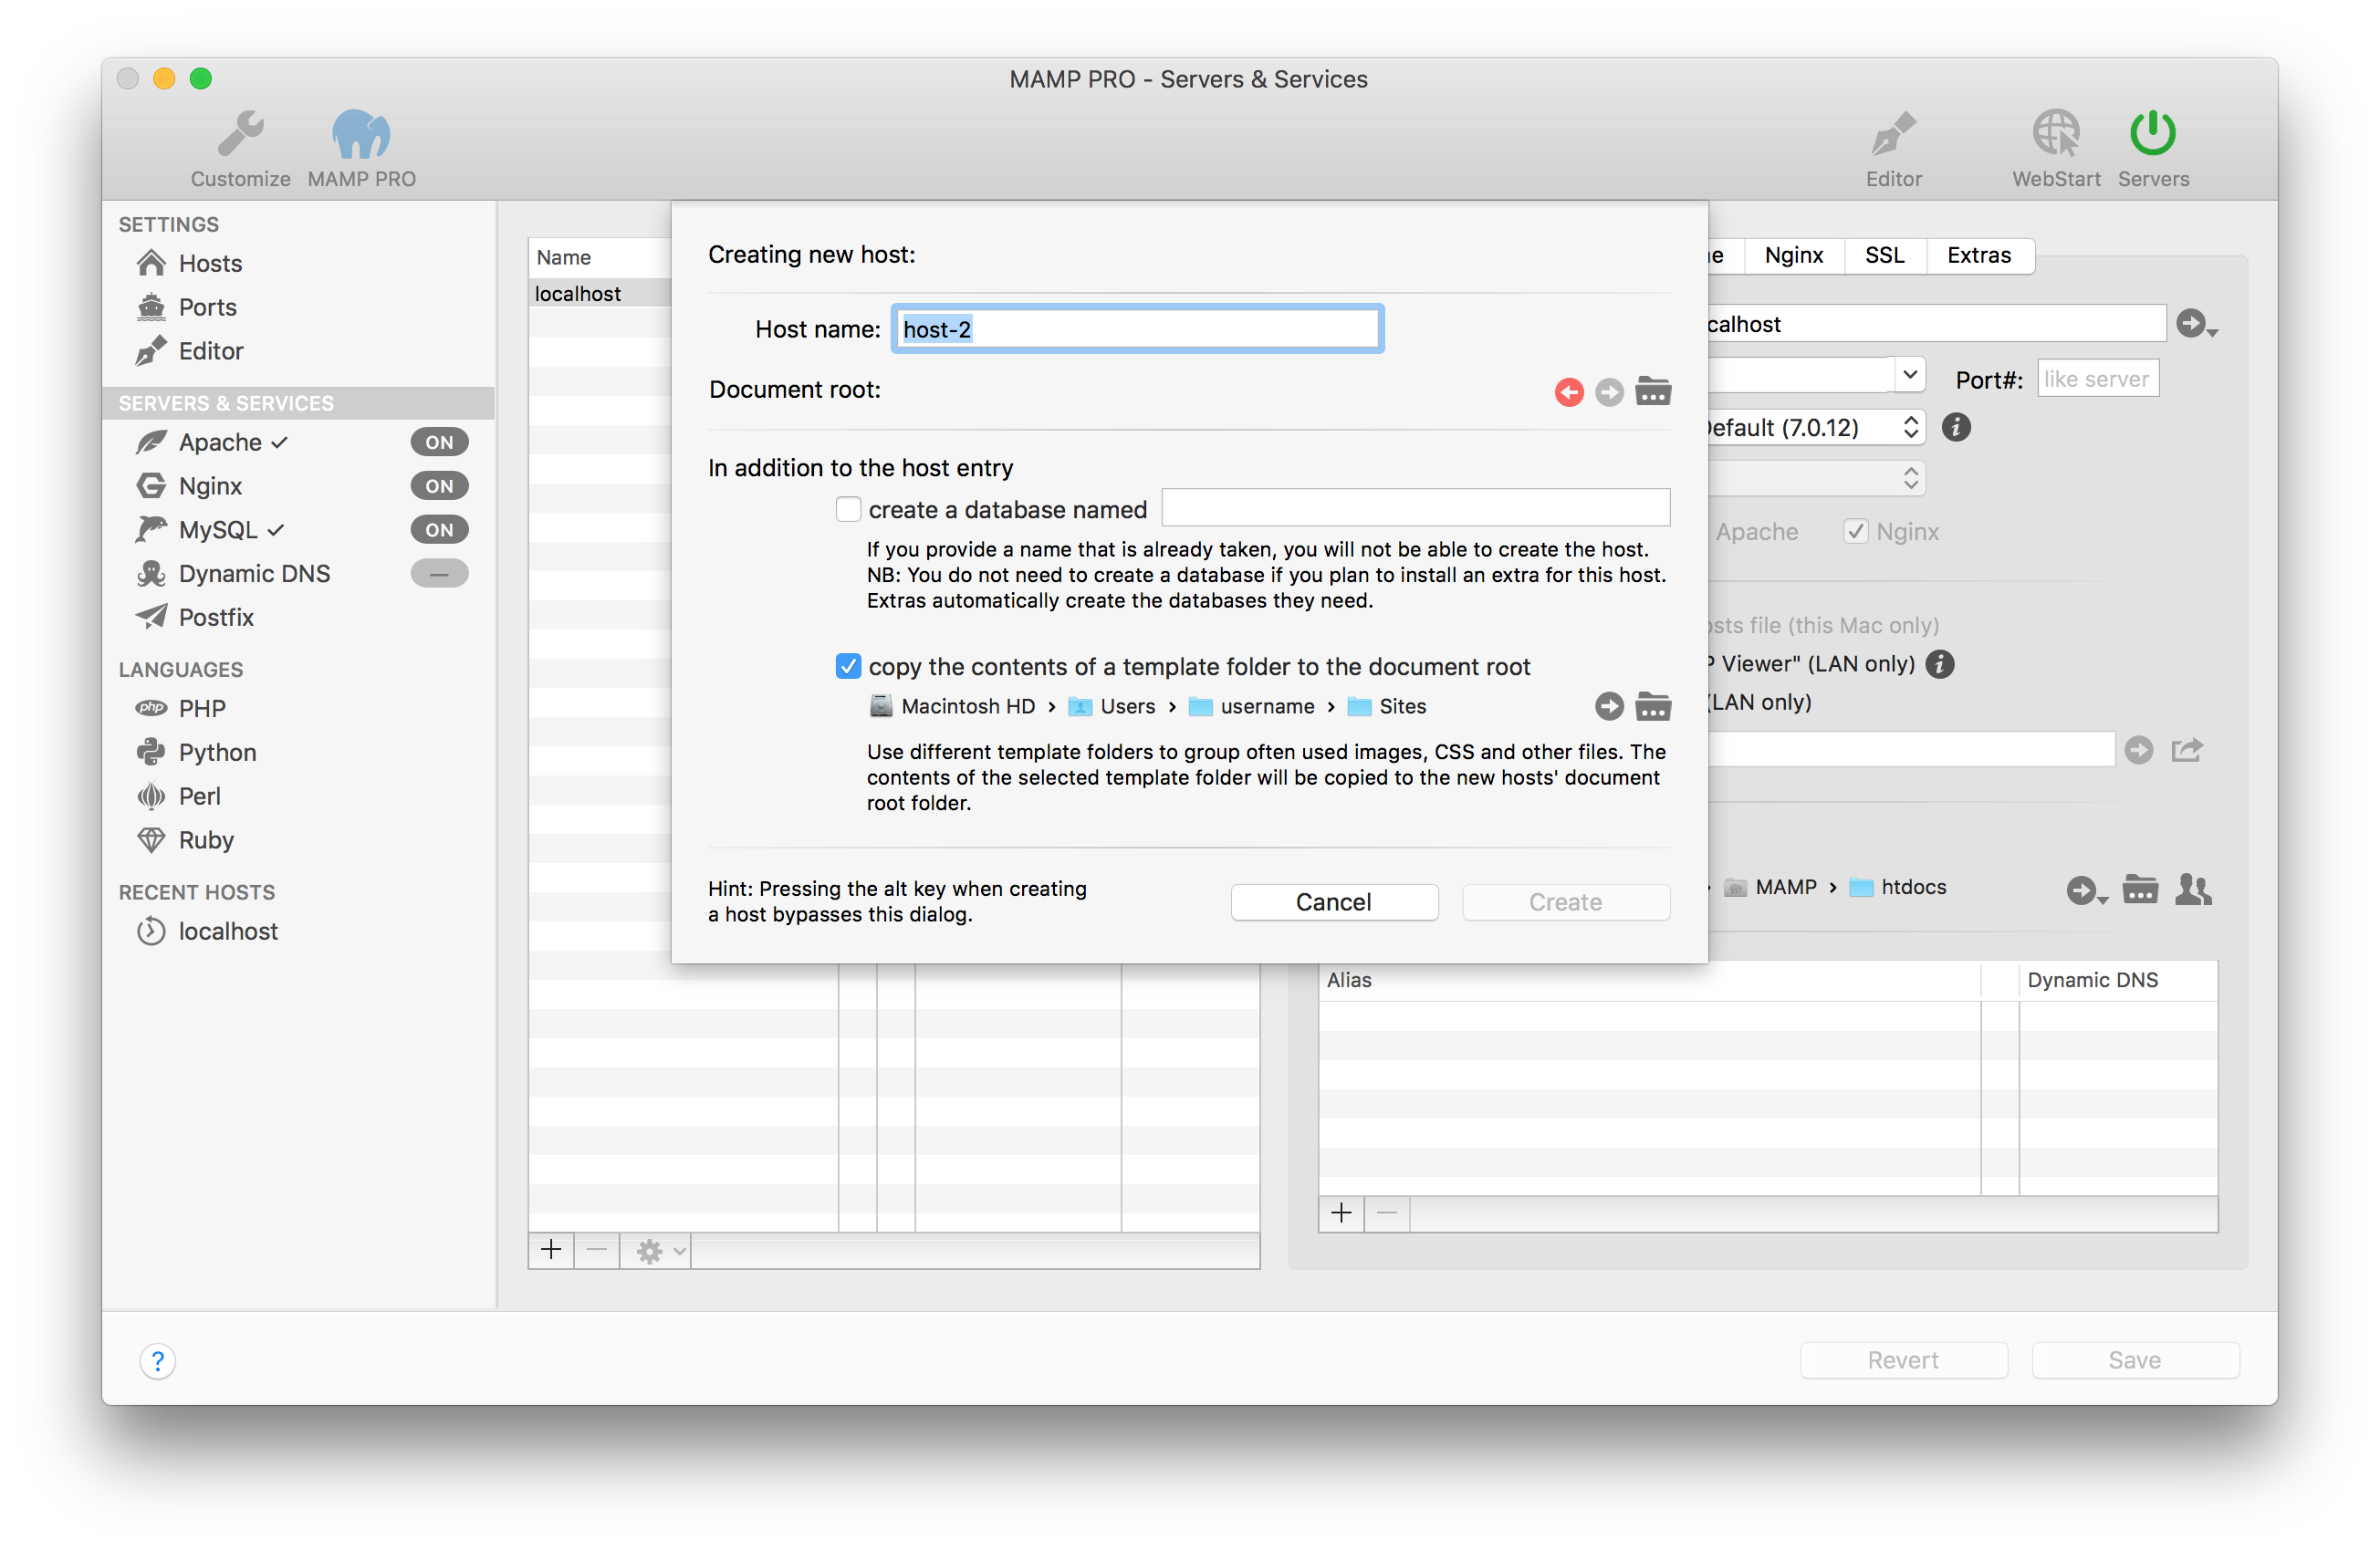 MAMP PRO (Mac) Documentation > Settings > Hosts > General